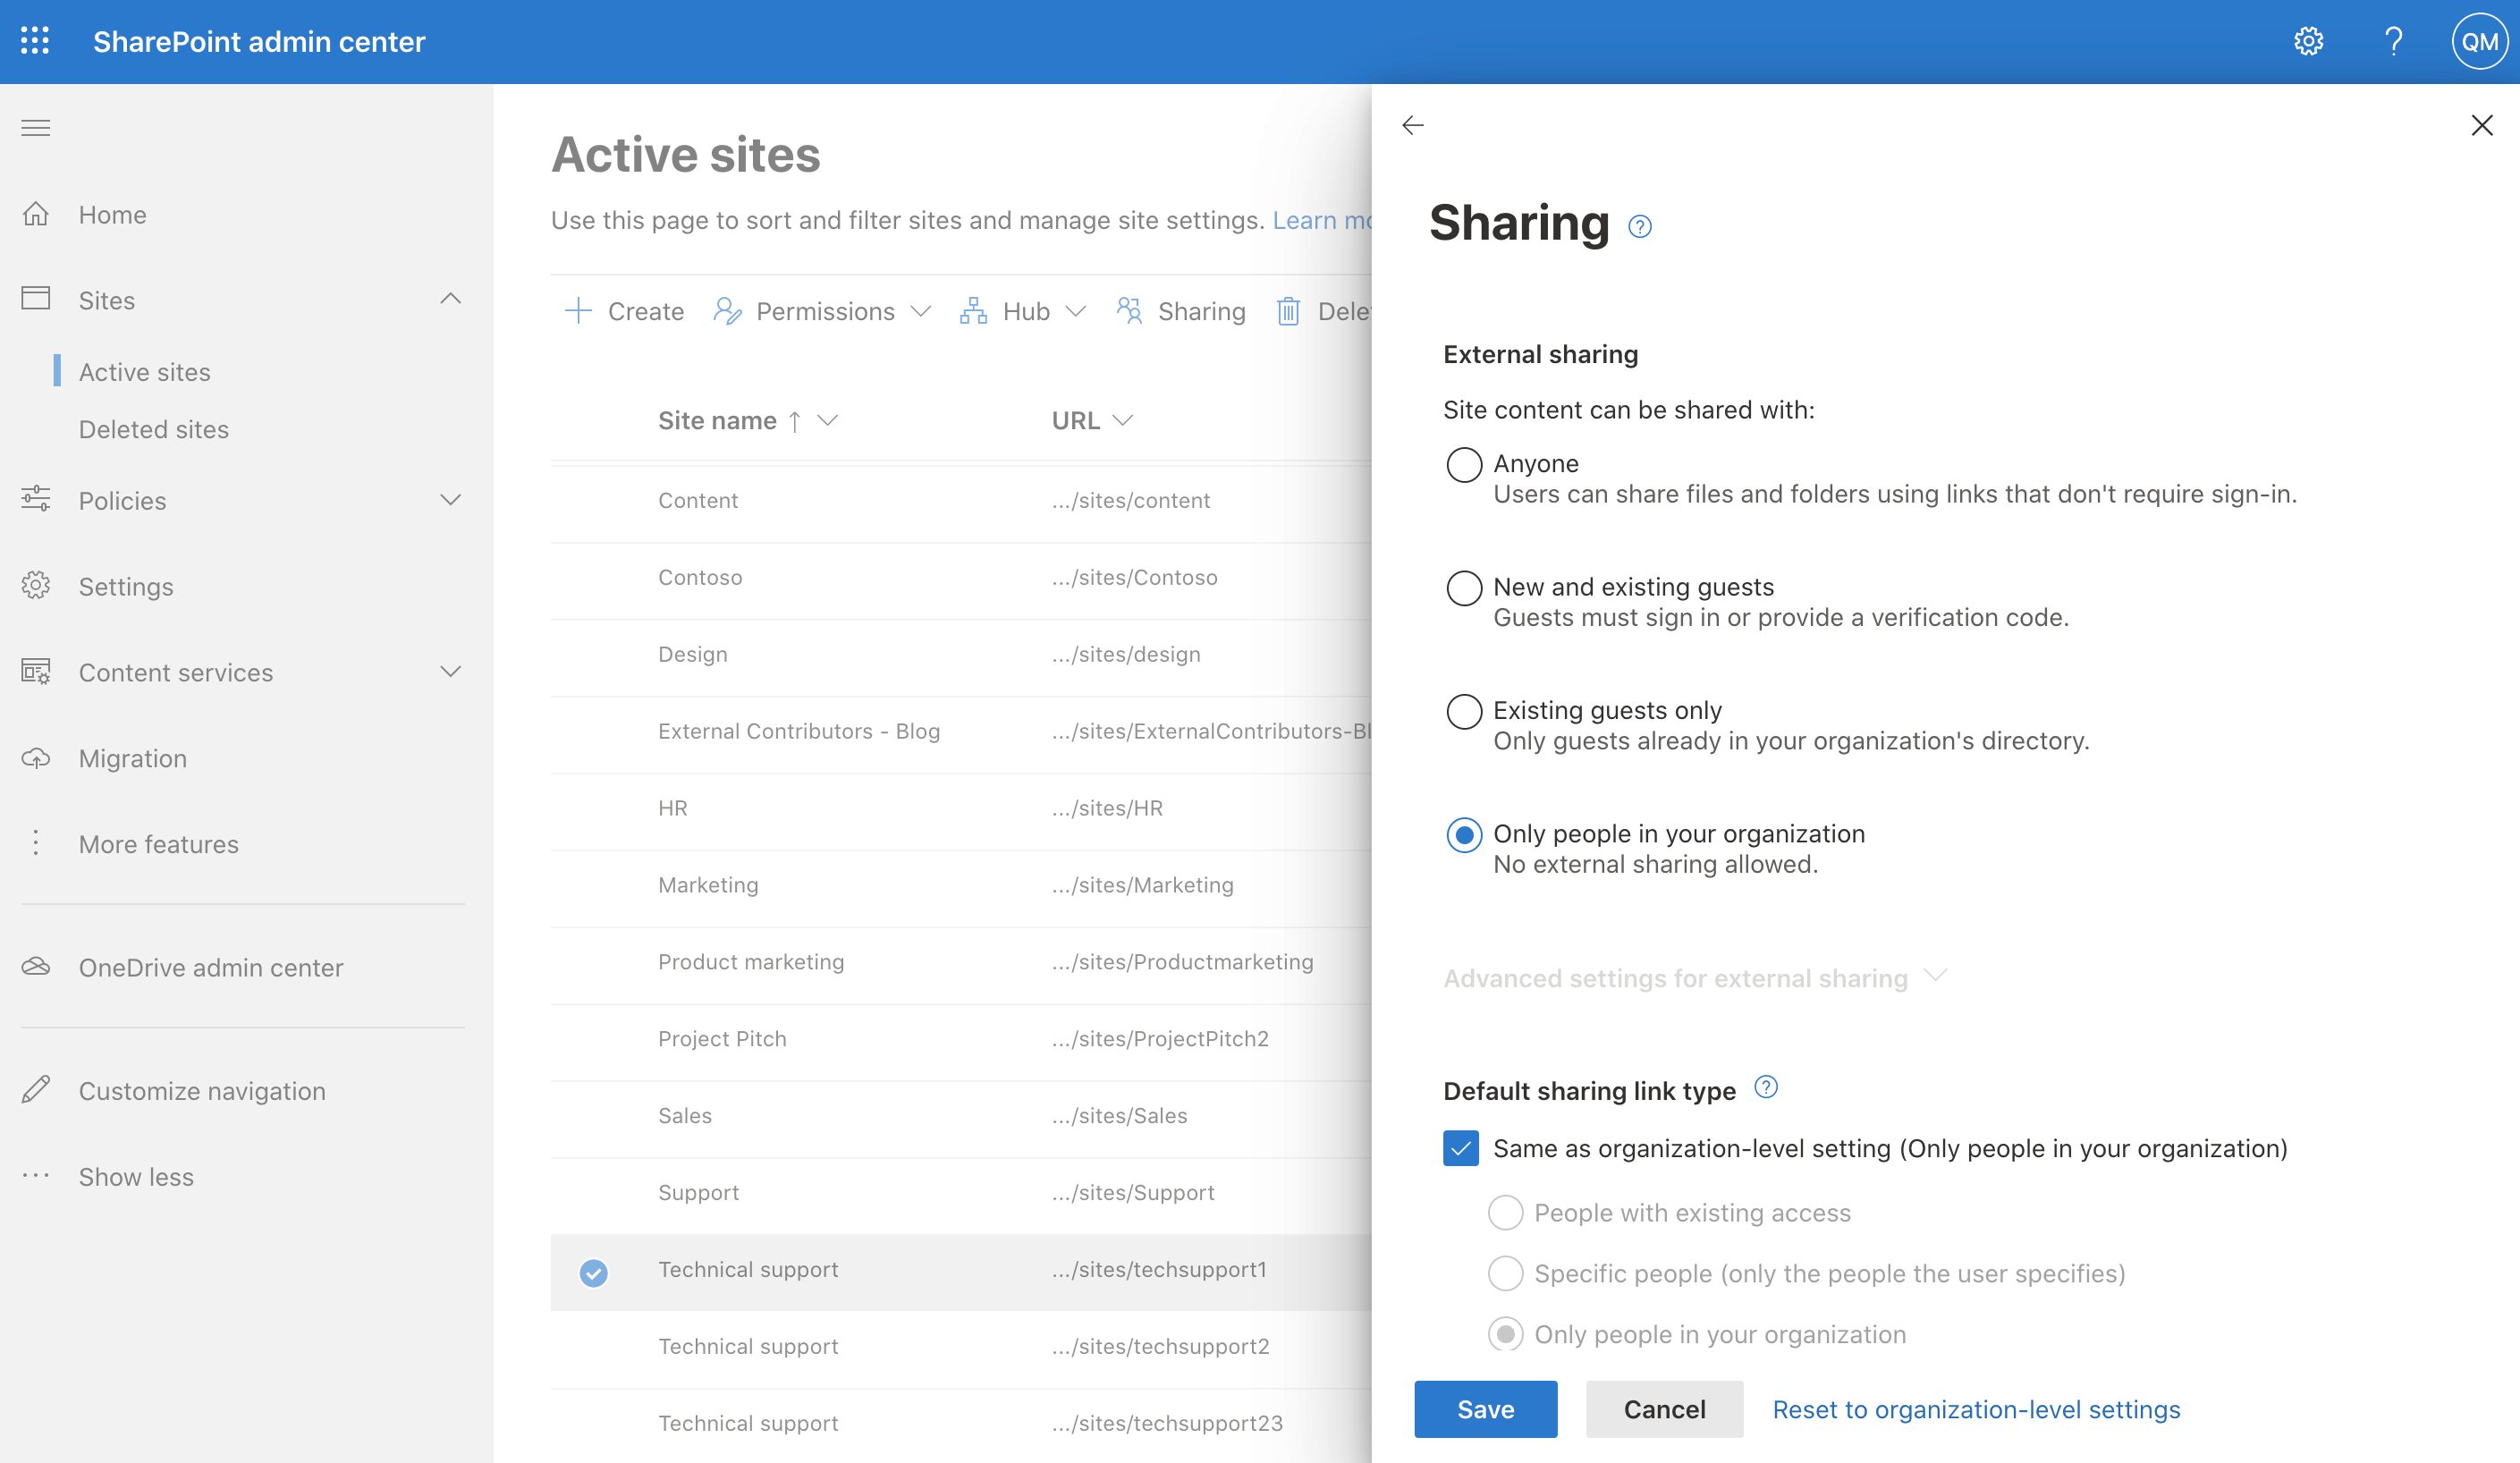 Screenshot of Sharing settings in the SharePoint admin center.